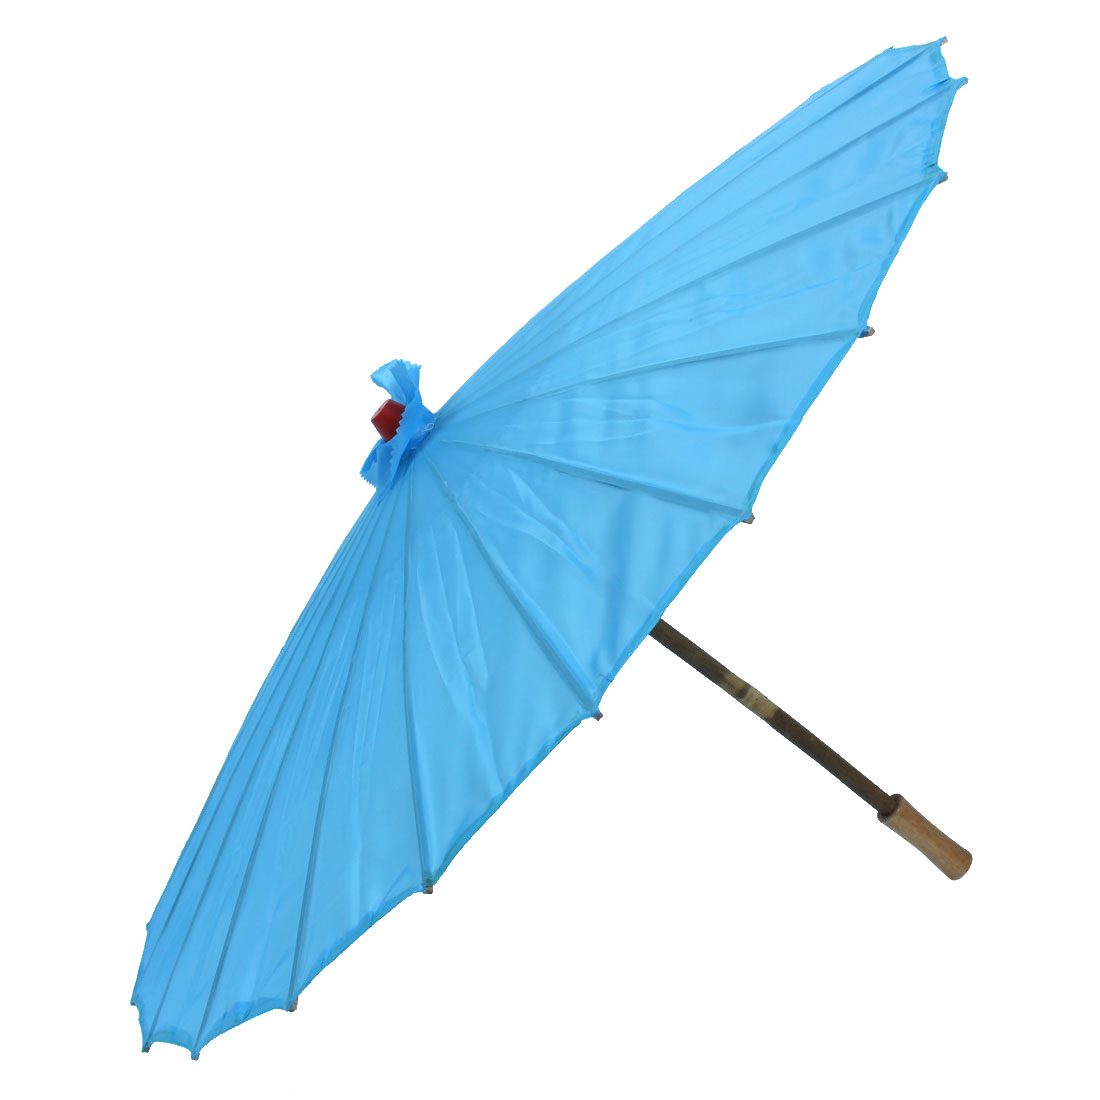 Bamboo Japanese Chinese Style Traditional Manually Dancing Umbrella Parasol Light Blue 78cm Dia